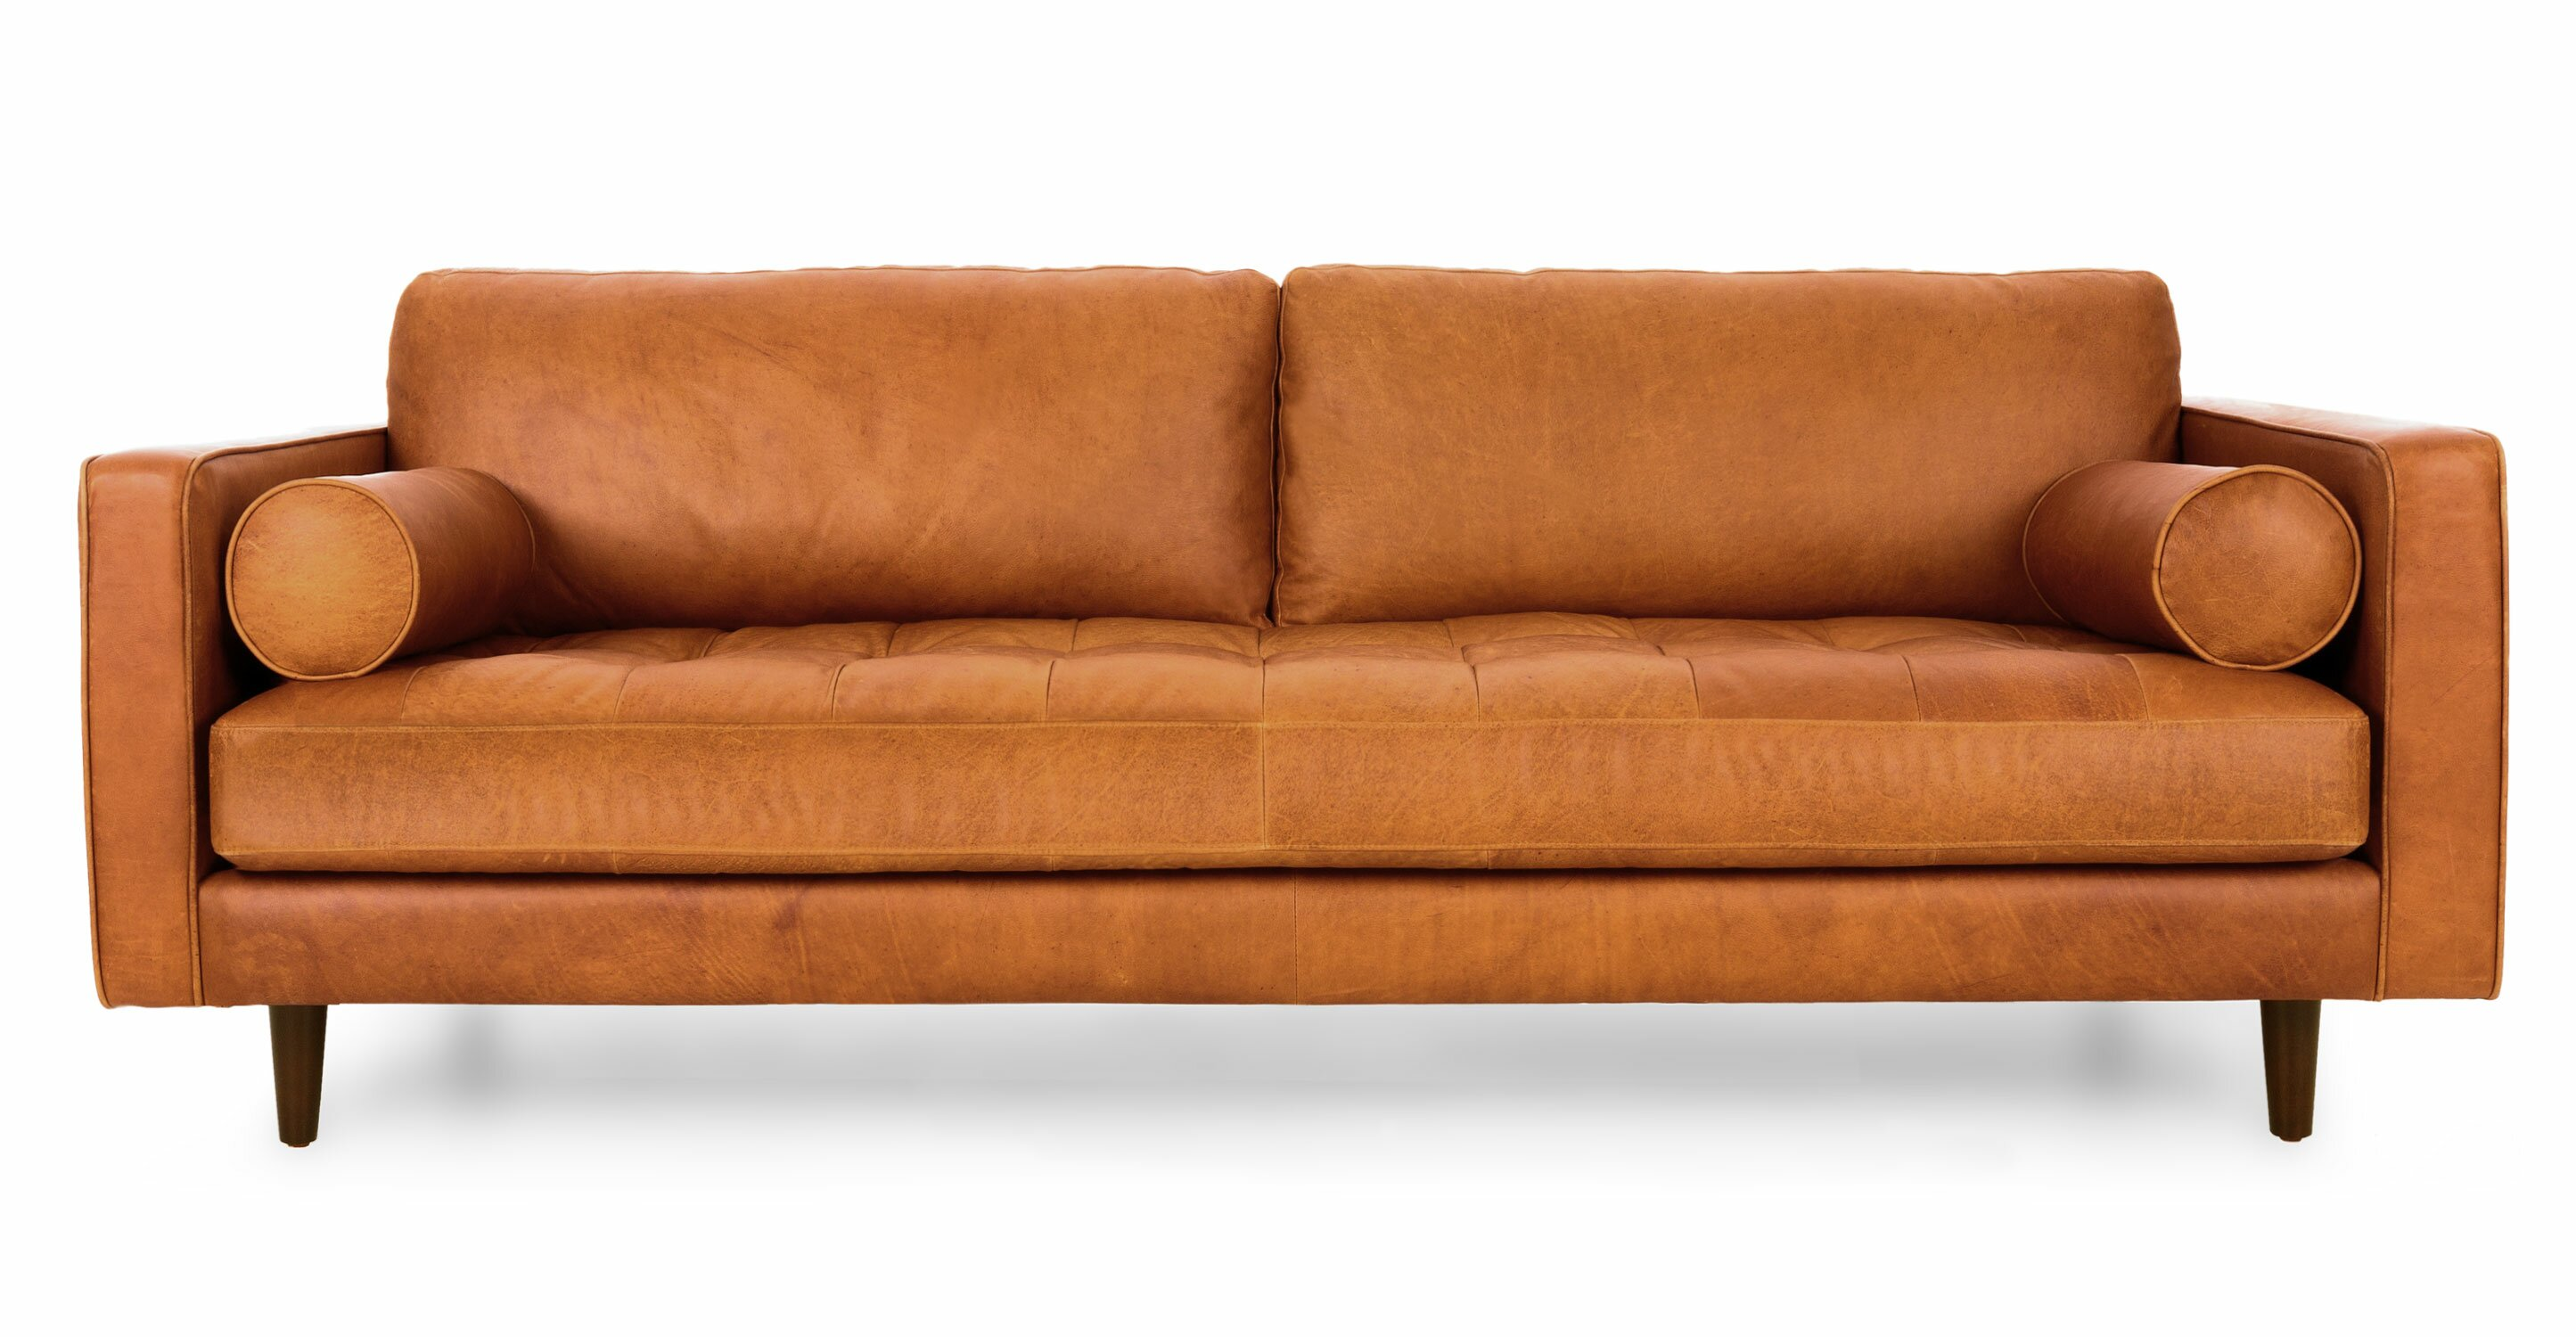 Sofas Retro | Mid Century Sofas | Retro Sleeper Sofa